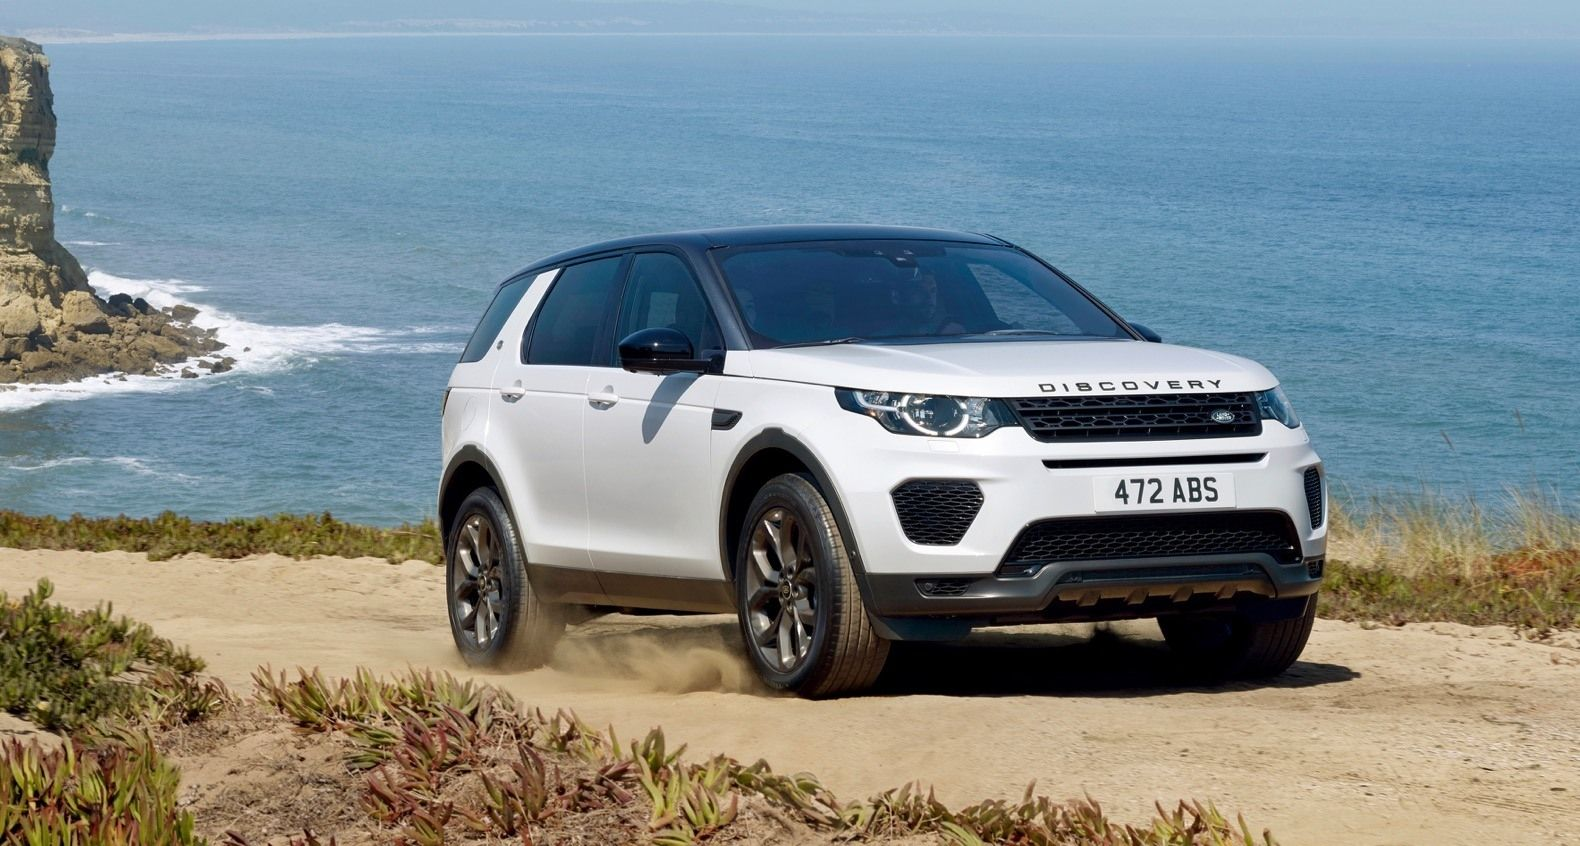 Best 2019 Land Rover Discovery Sport Review Land rover